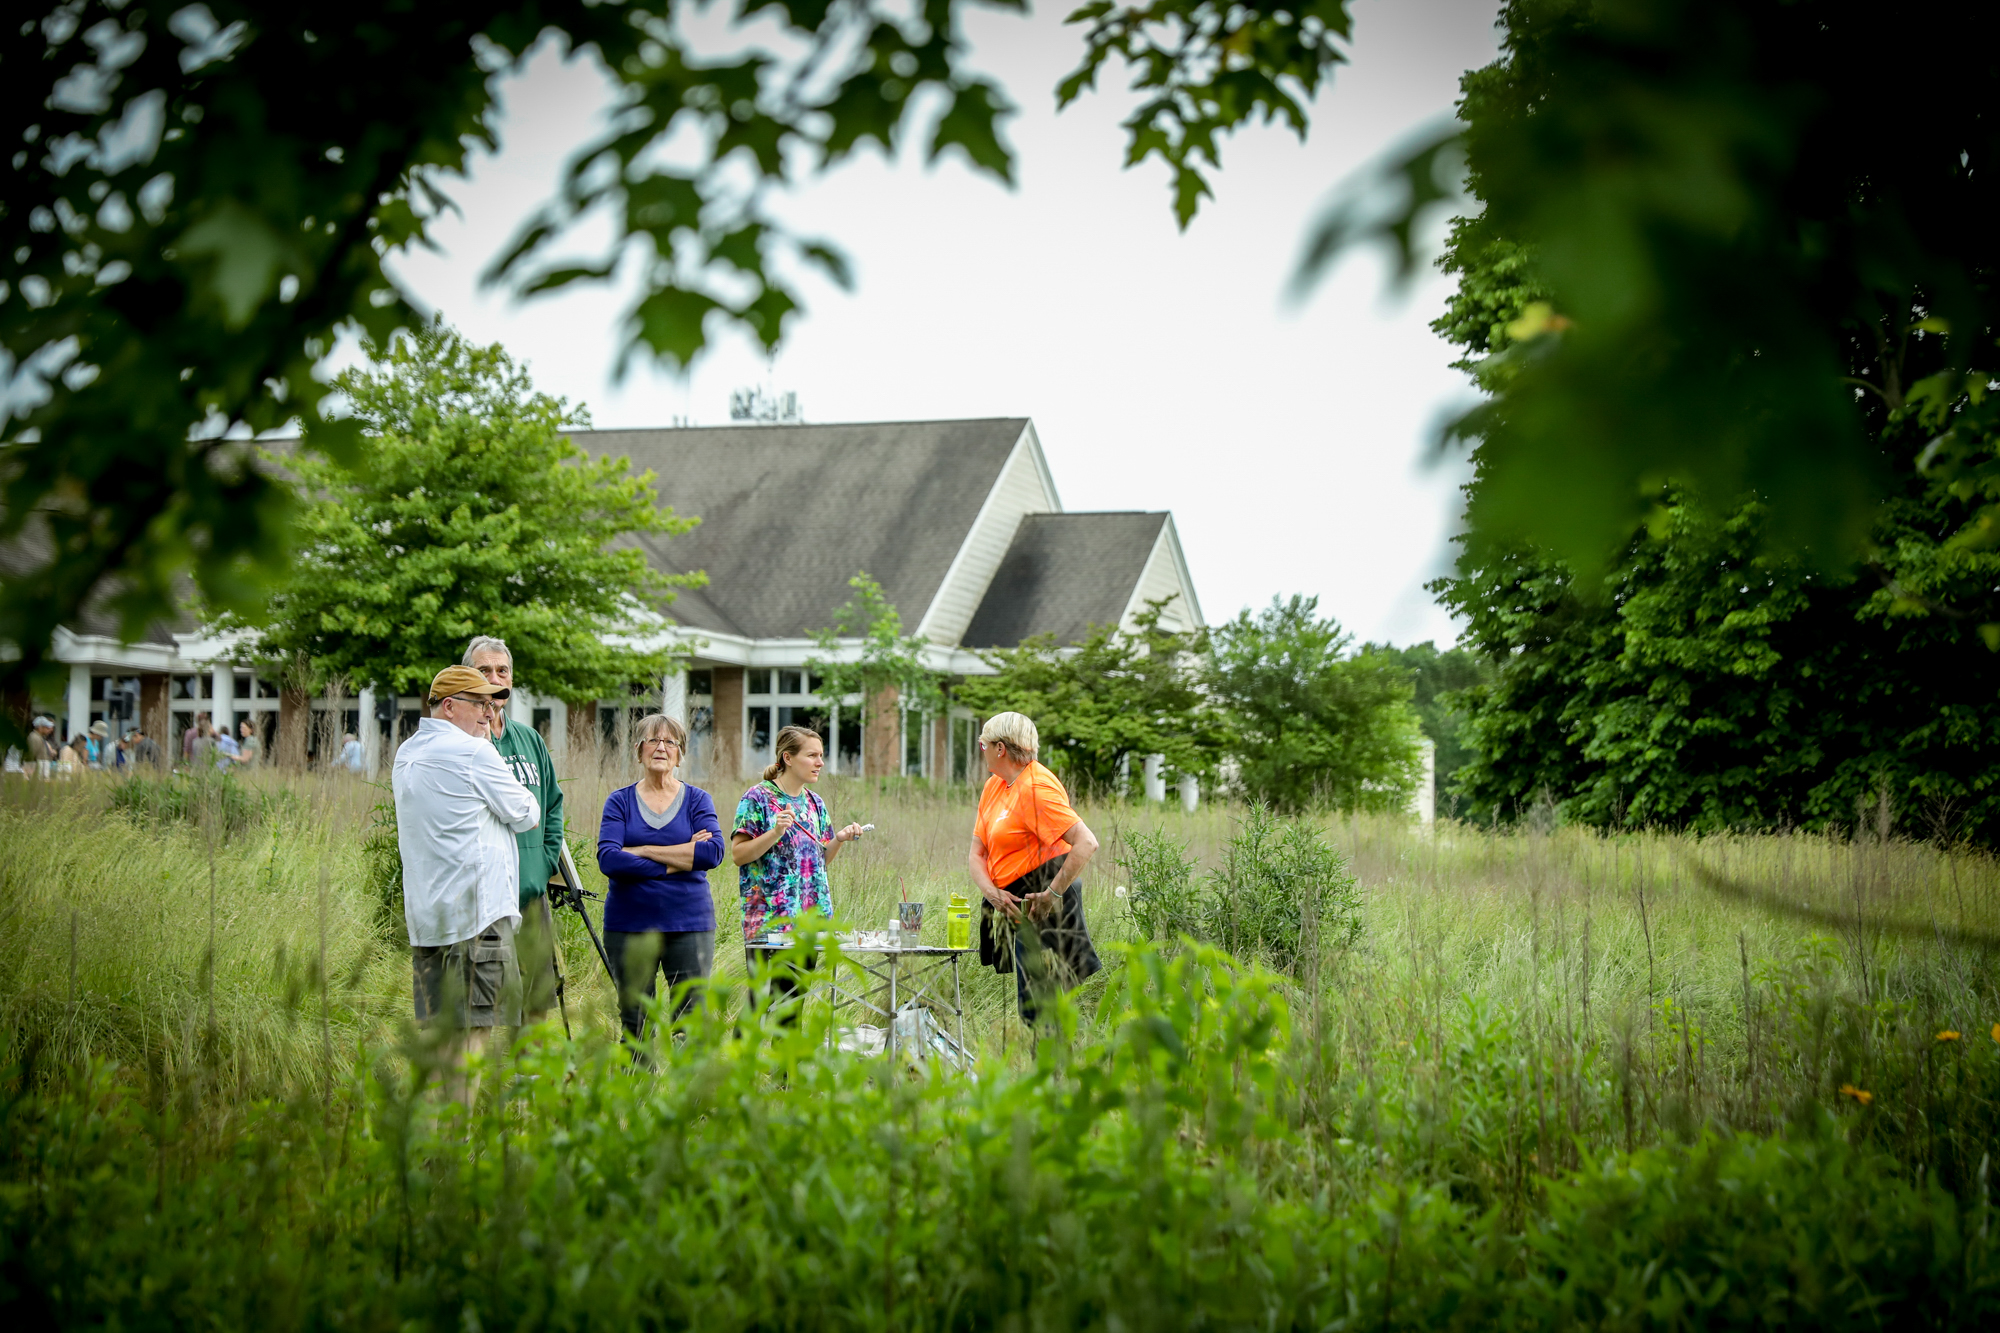 The Land Conservancy of West Michigan has completed phase one of a campaign to transform The Highlands. People celebrated the accomplishment in Grand Rapids on June 20, 2019. (Michael Buck/WOOD TV8)